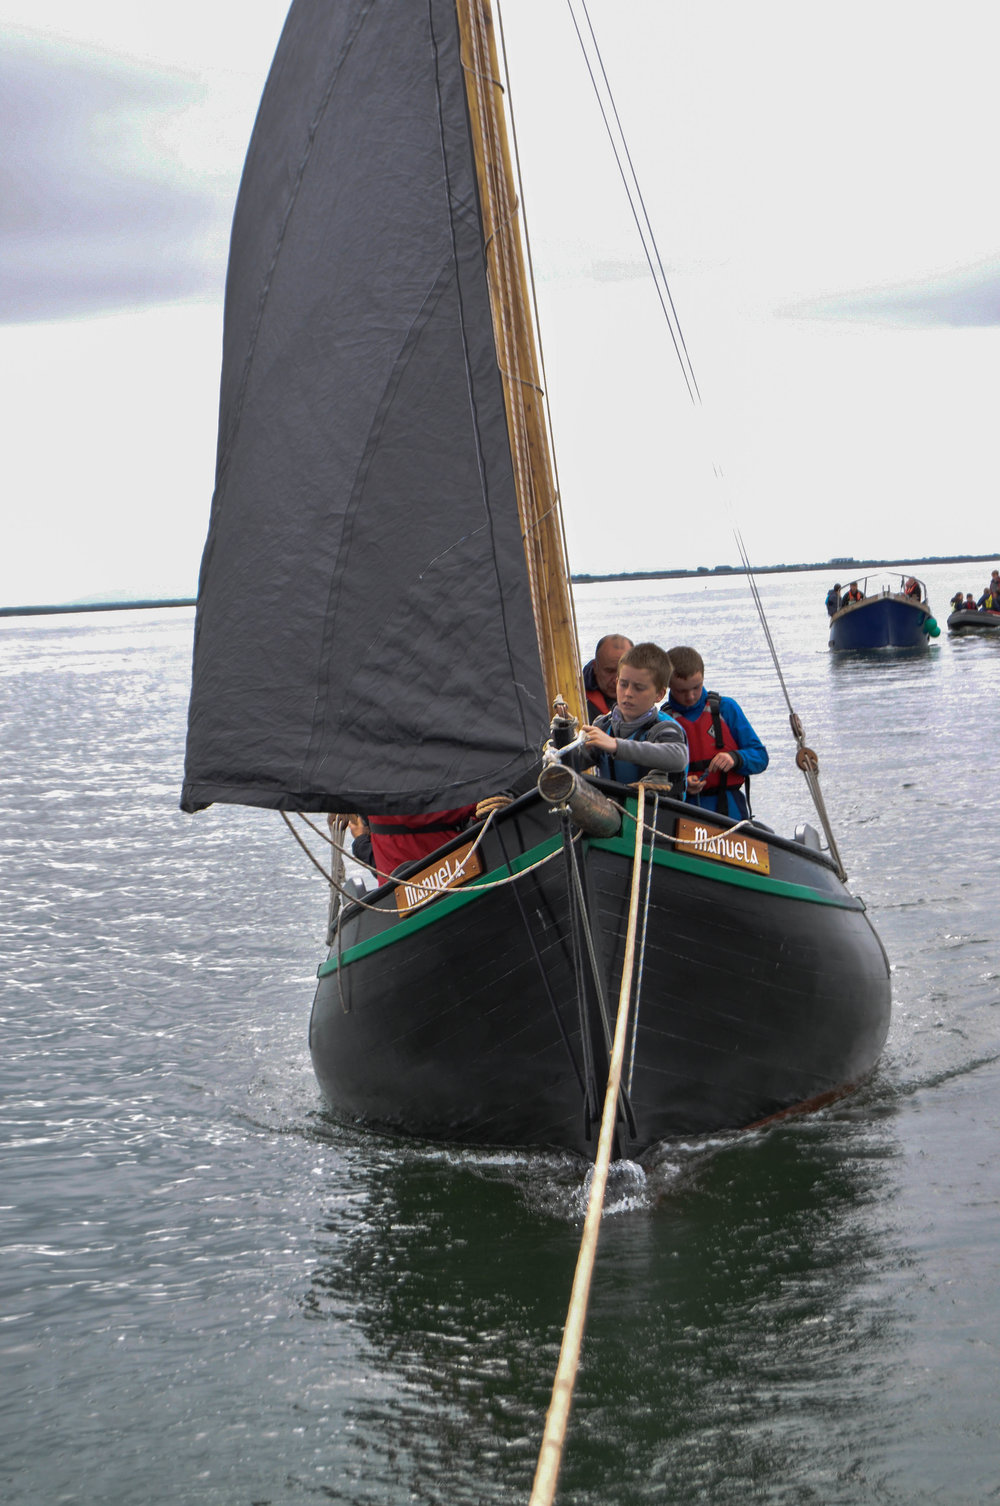 A Passed Down Tradition of Sailing in Galway Bay.